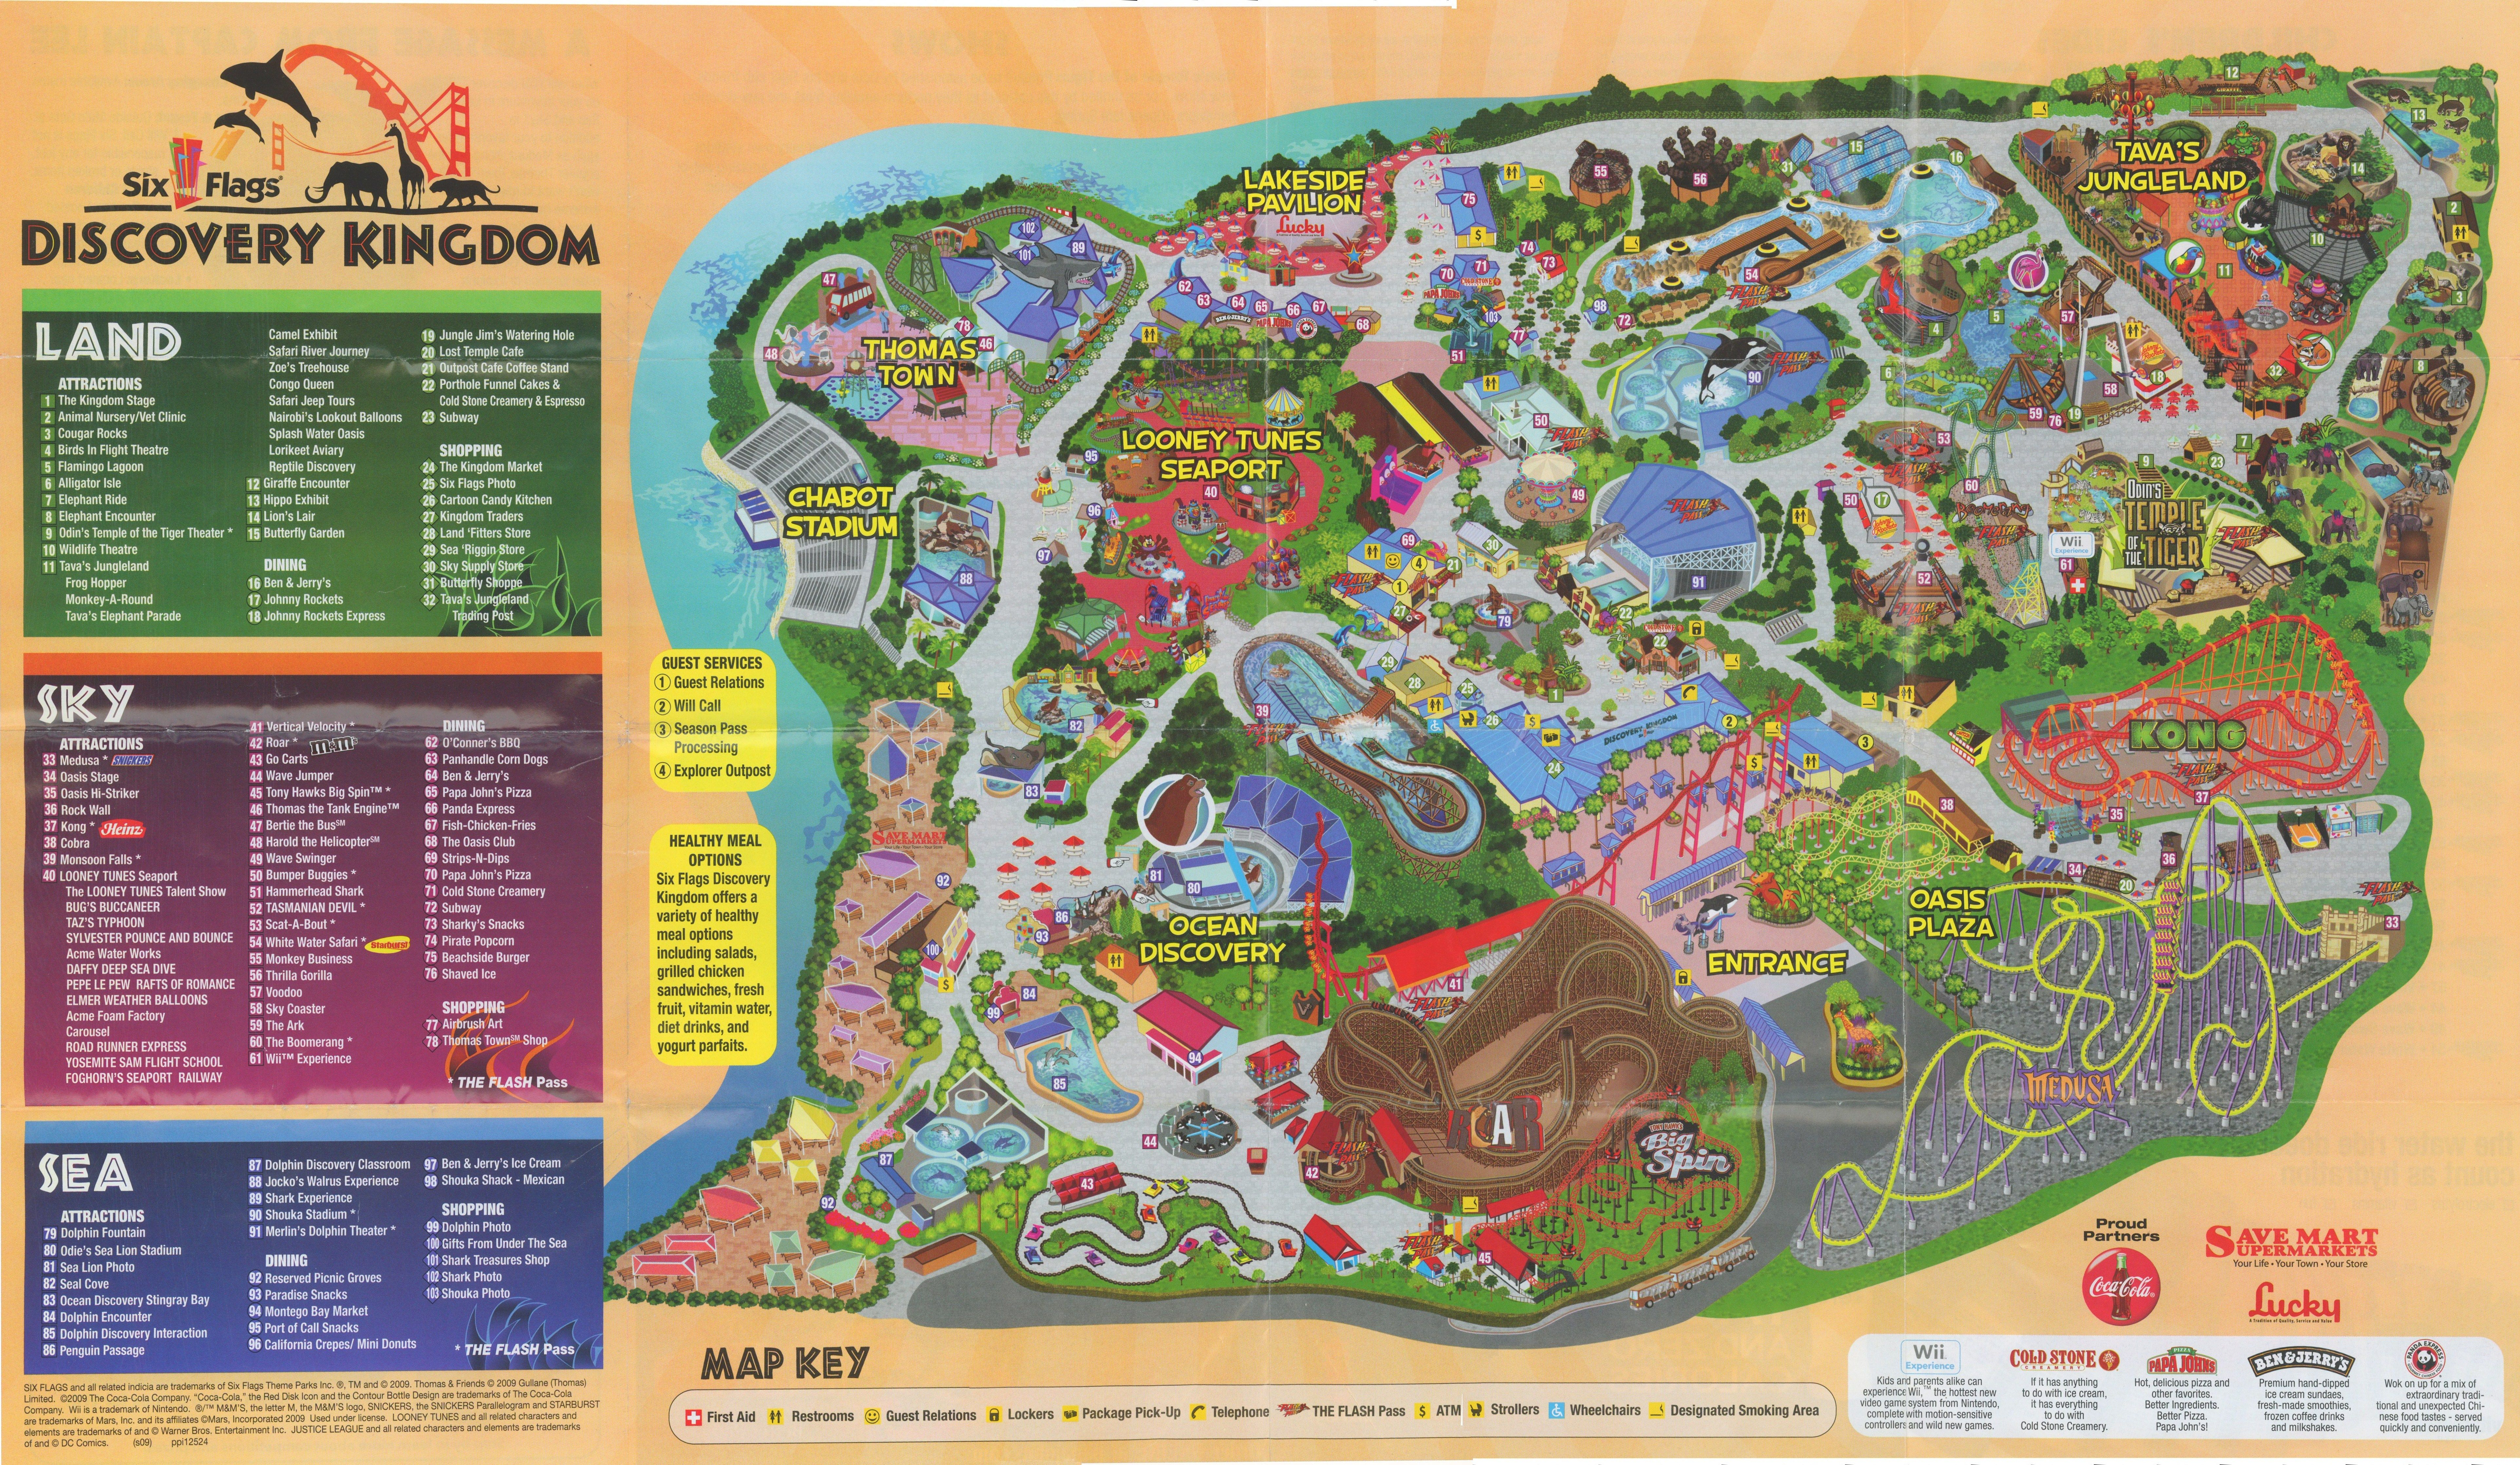 Six flags discovery kingdom vallejo coupons 2018